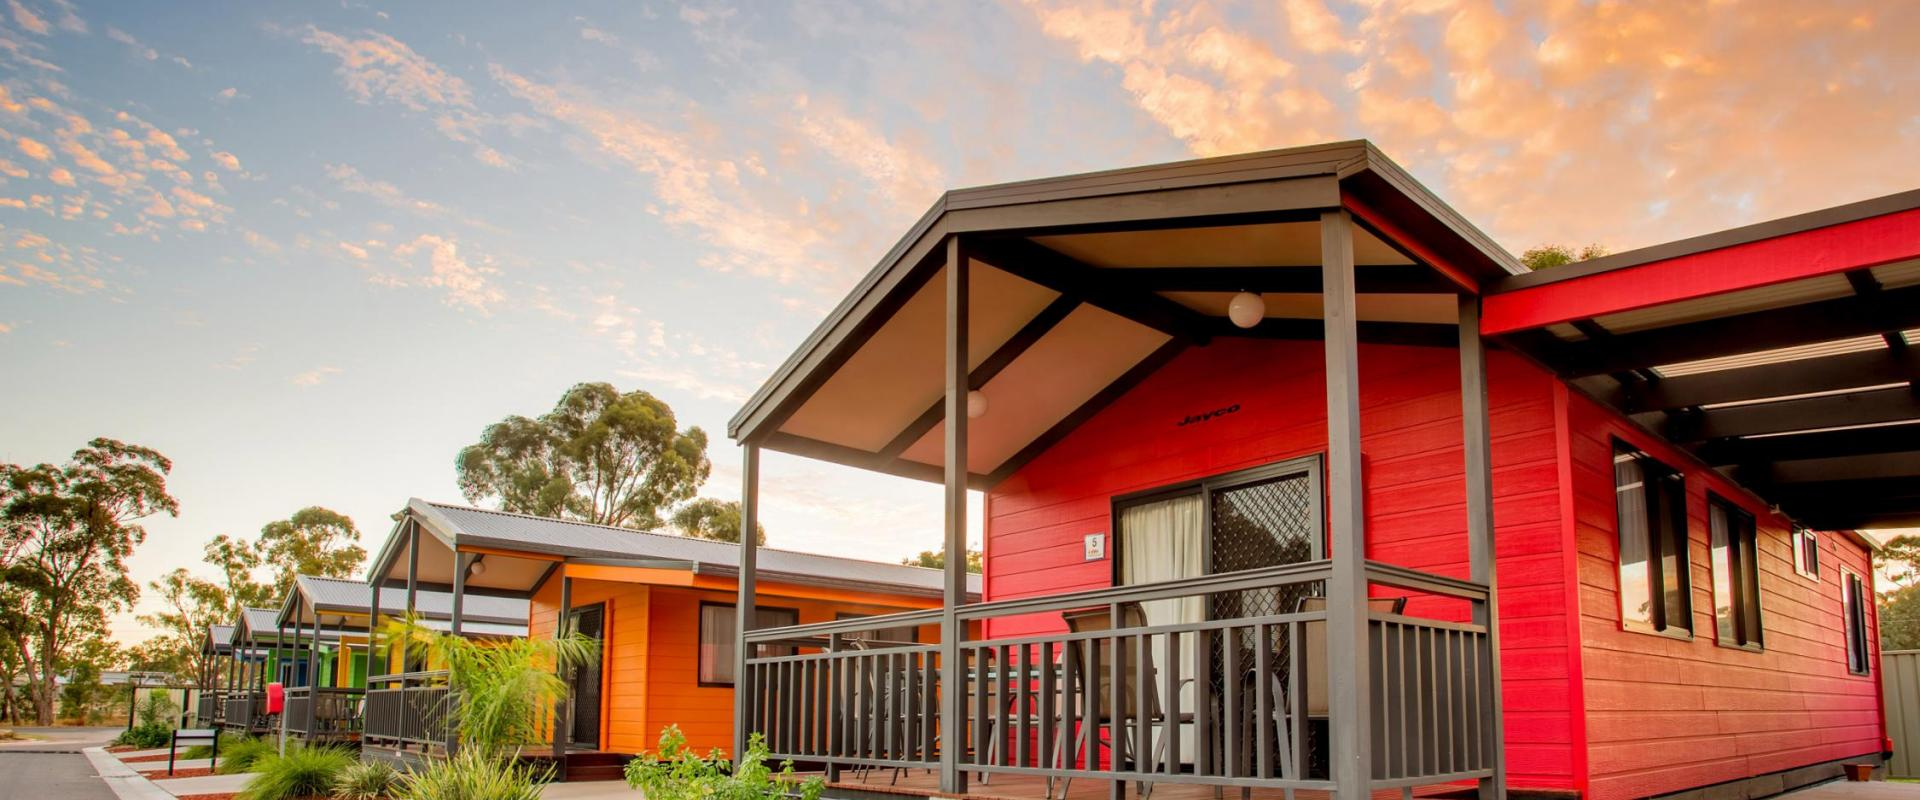 BIG4 Bendigo Park Lane Holiday Park - Parky's Wonderland - Colour Cabin Accommodation